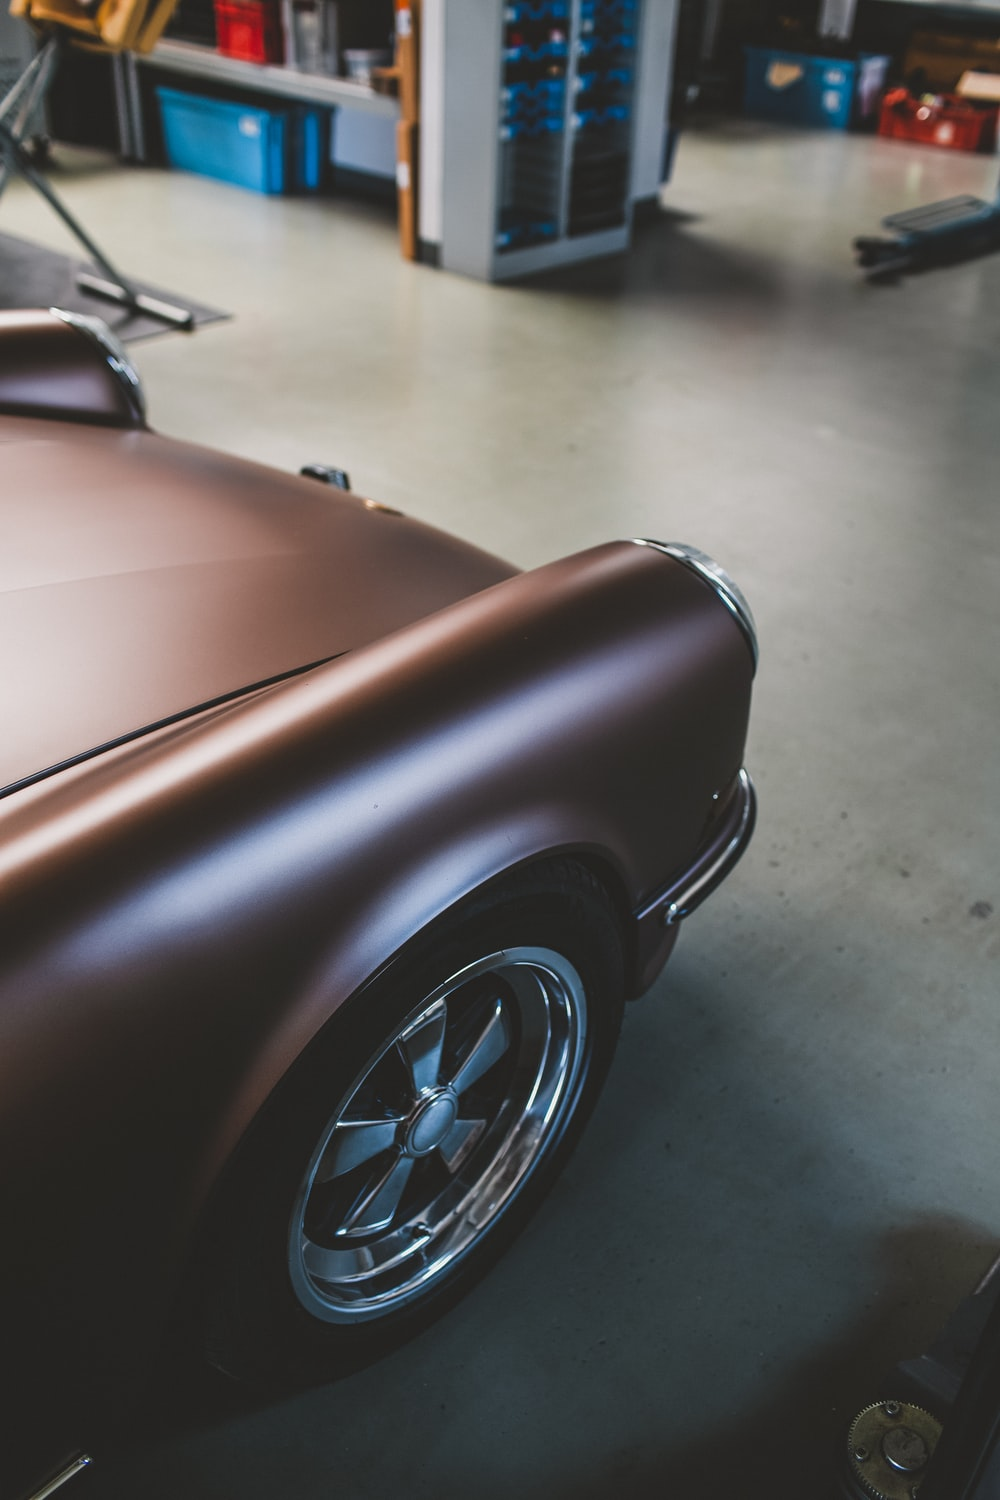 brown car in a room